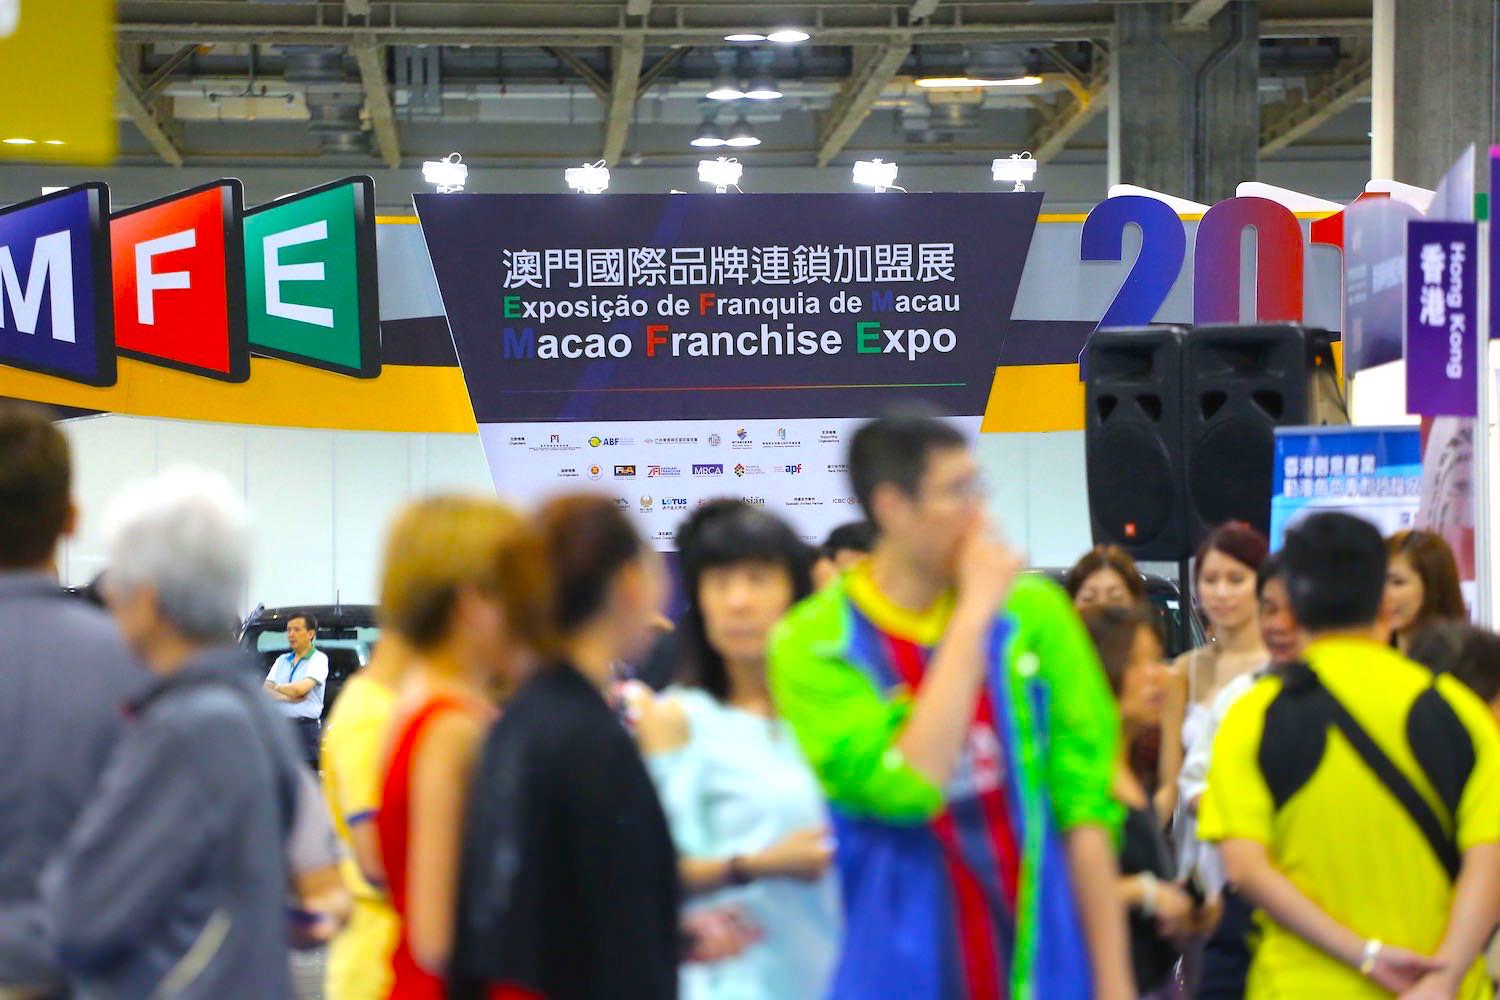 macao-franchise-expo-2015